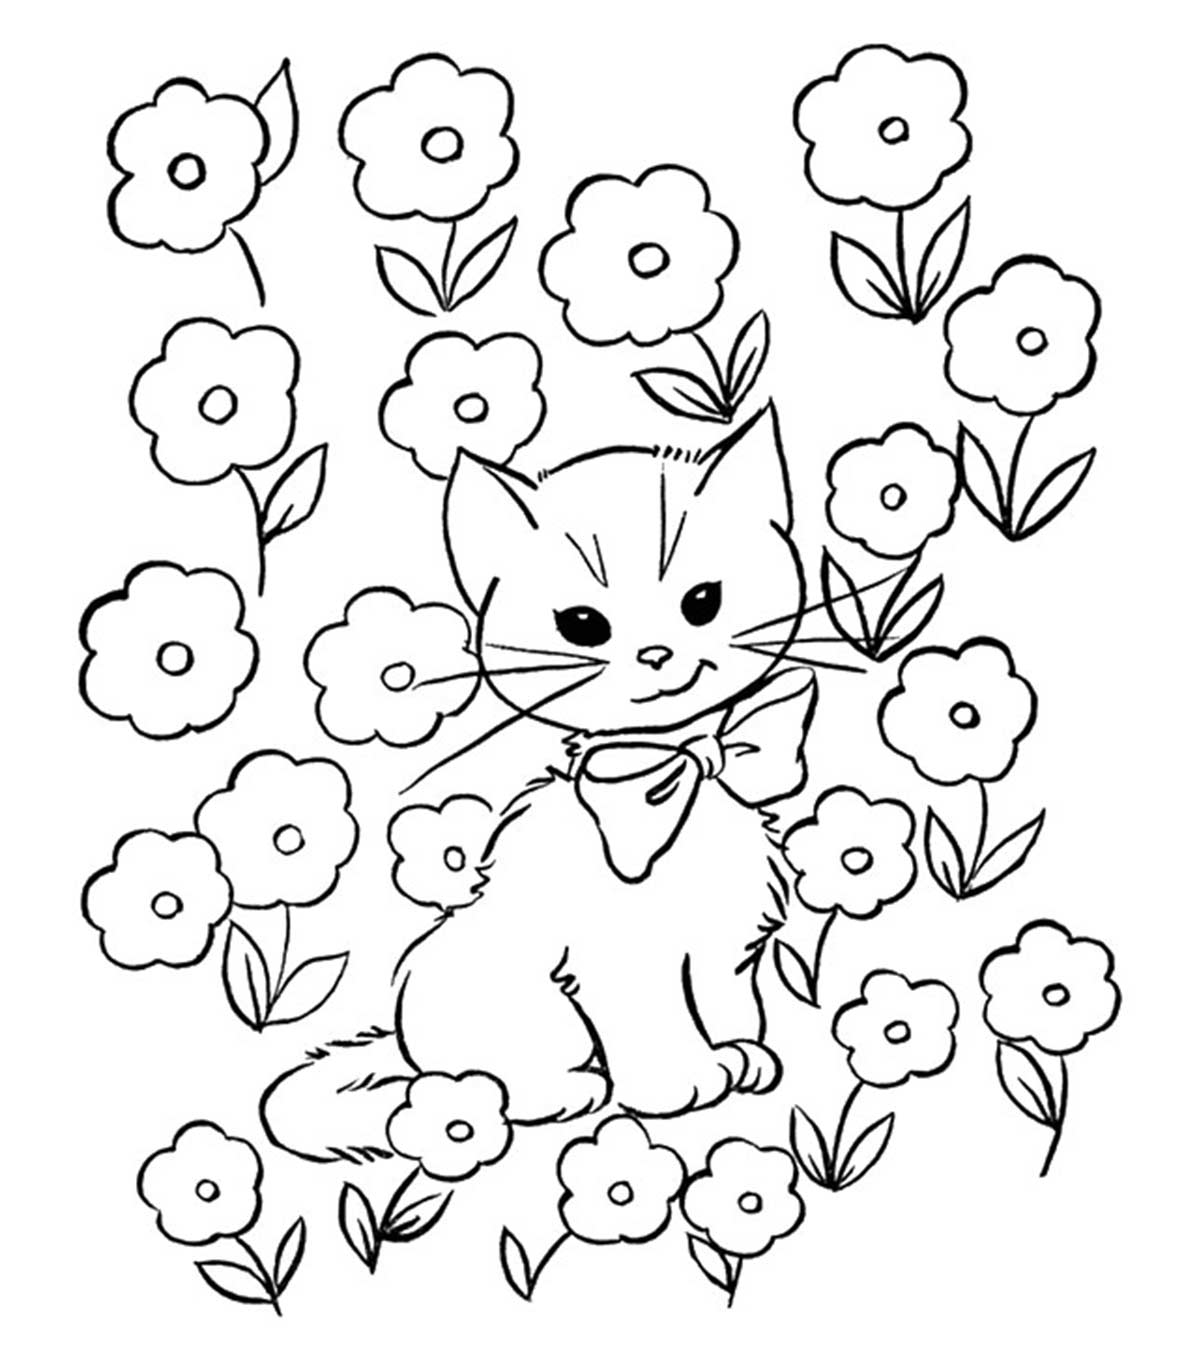 pictures of cats and kittens to color animal coloring pages and of pictures cats kittens to color